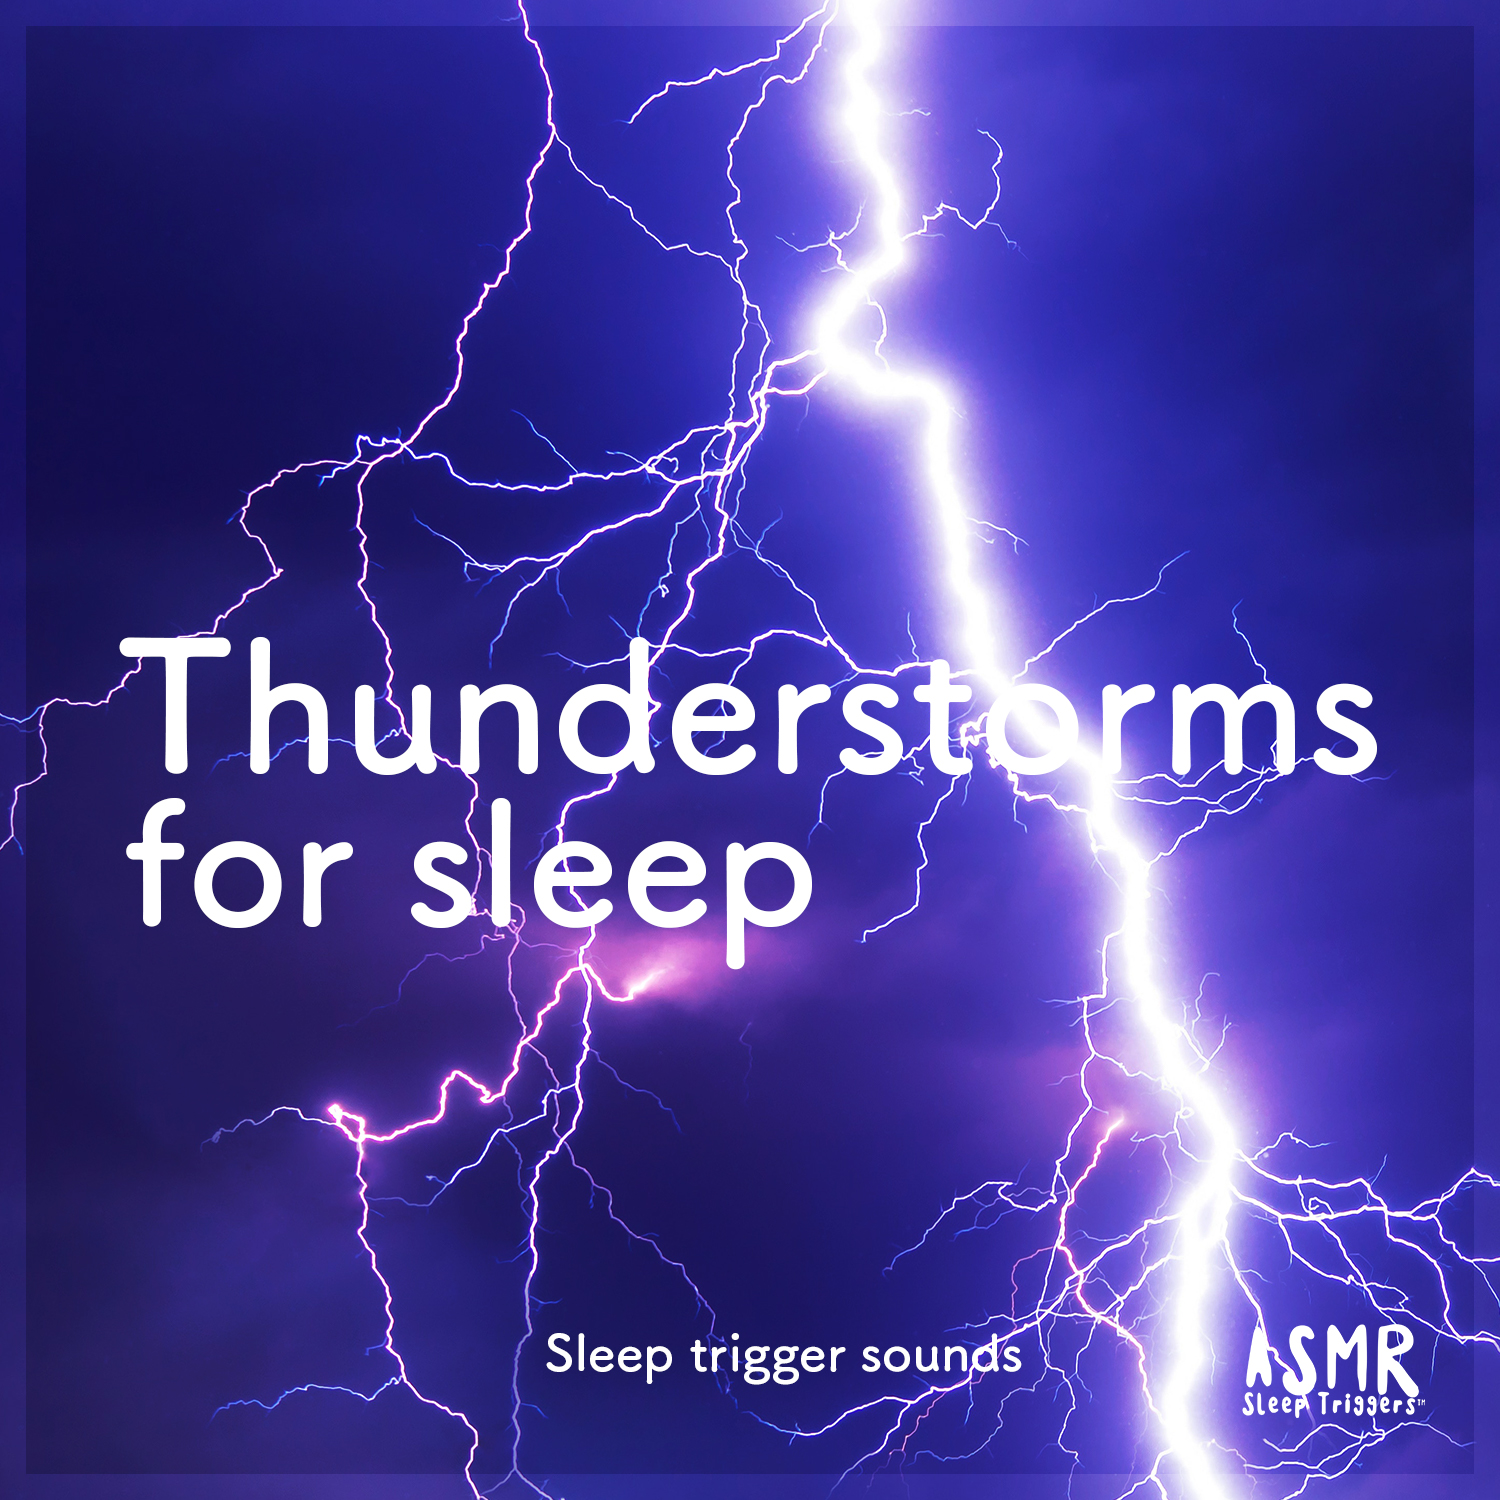 Thunderstorms for sleep 02.jpg